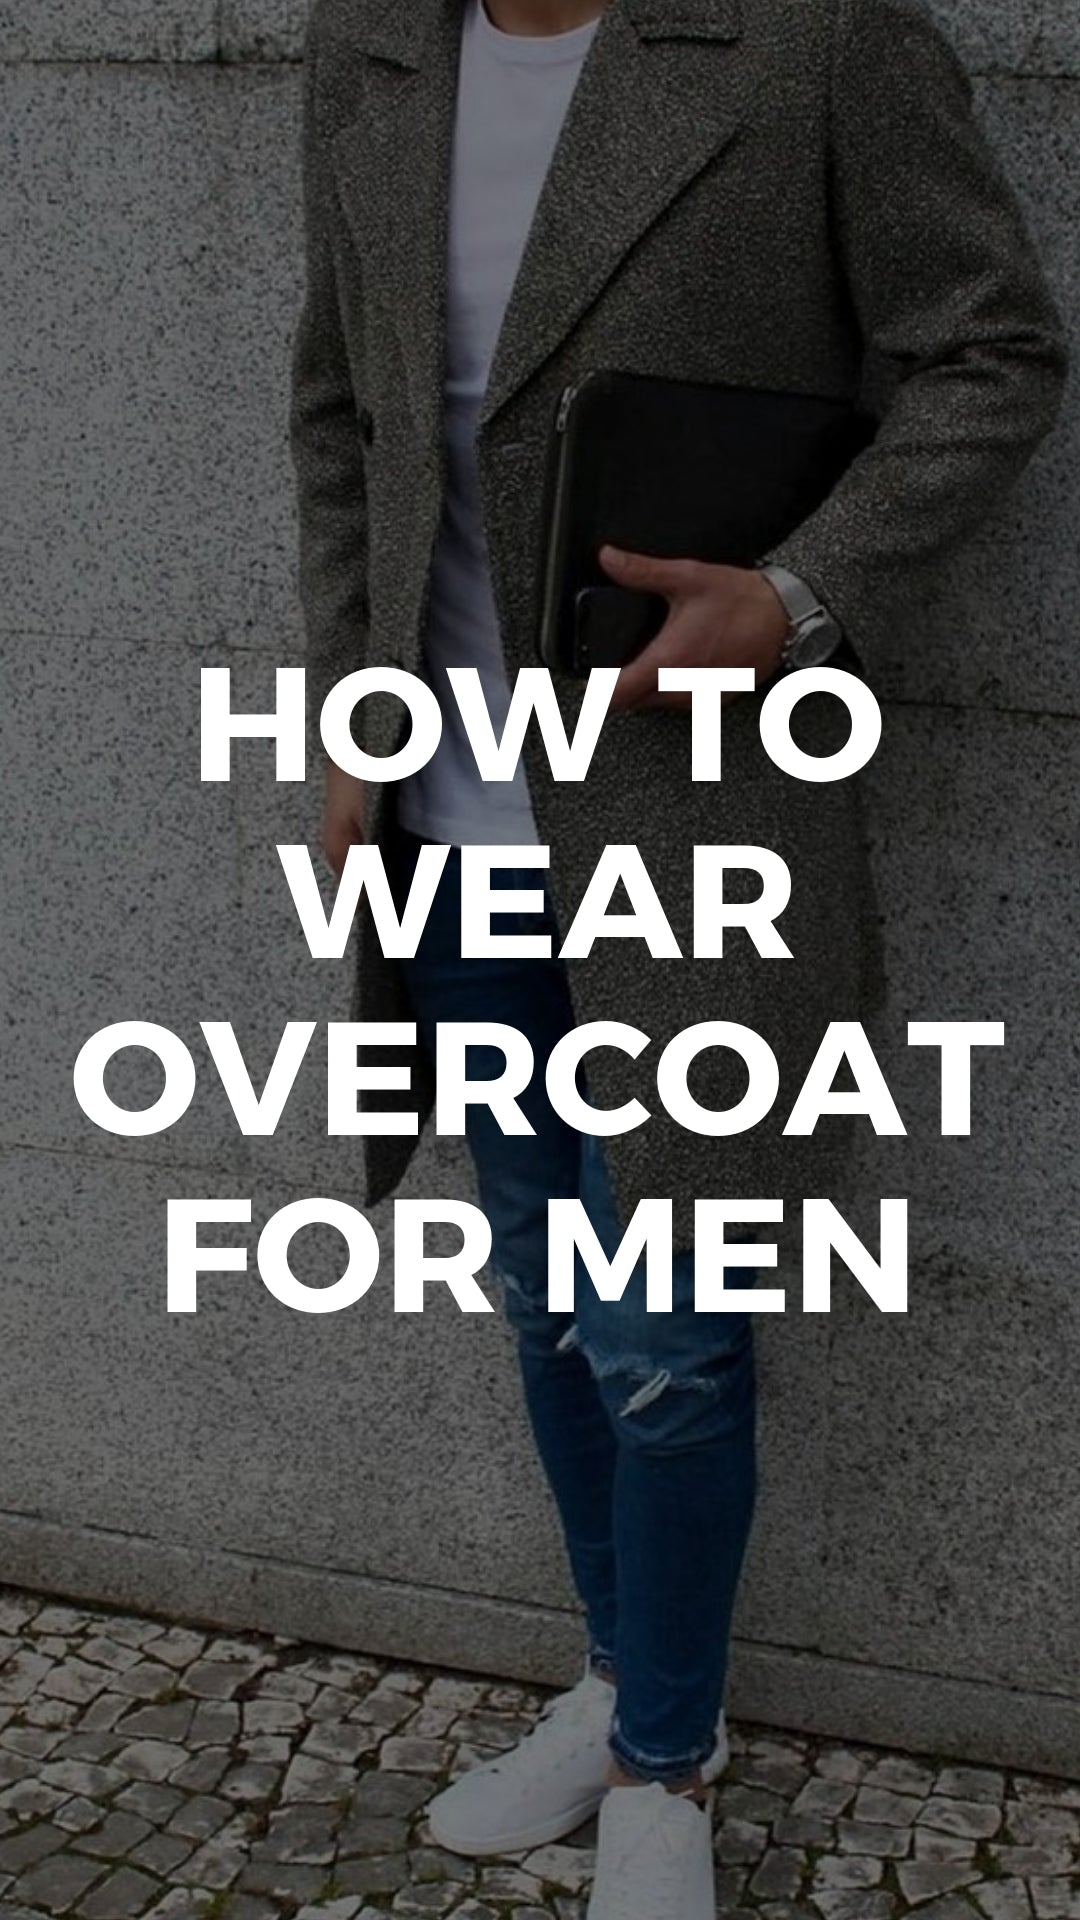 Overcoat outfits for men #mens #fashion #street #style